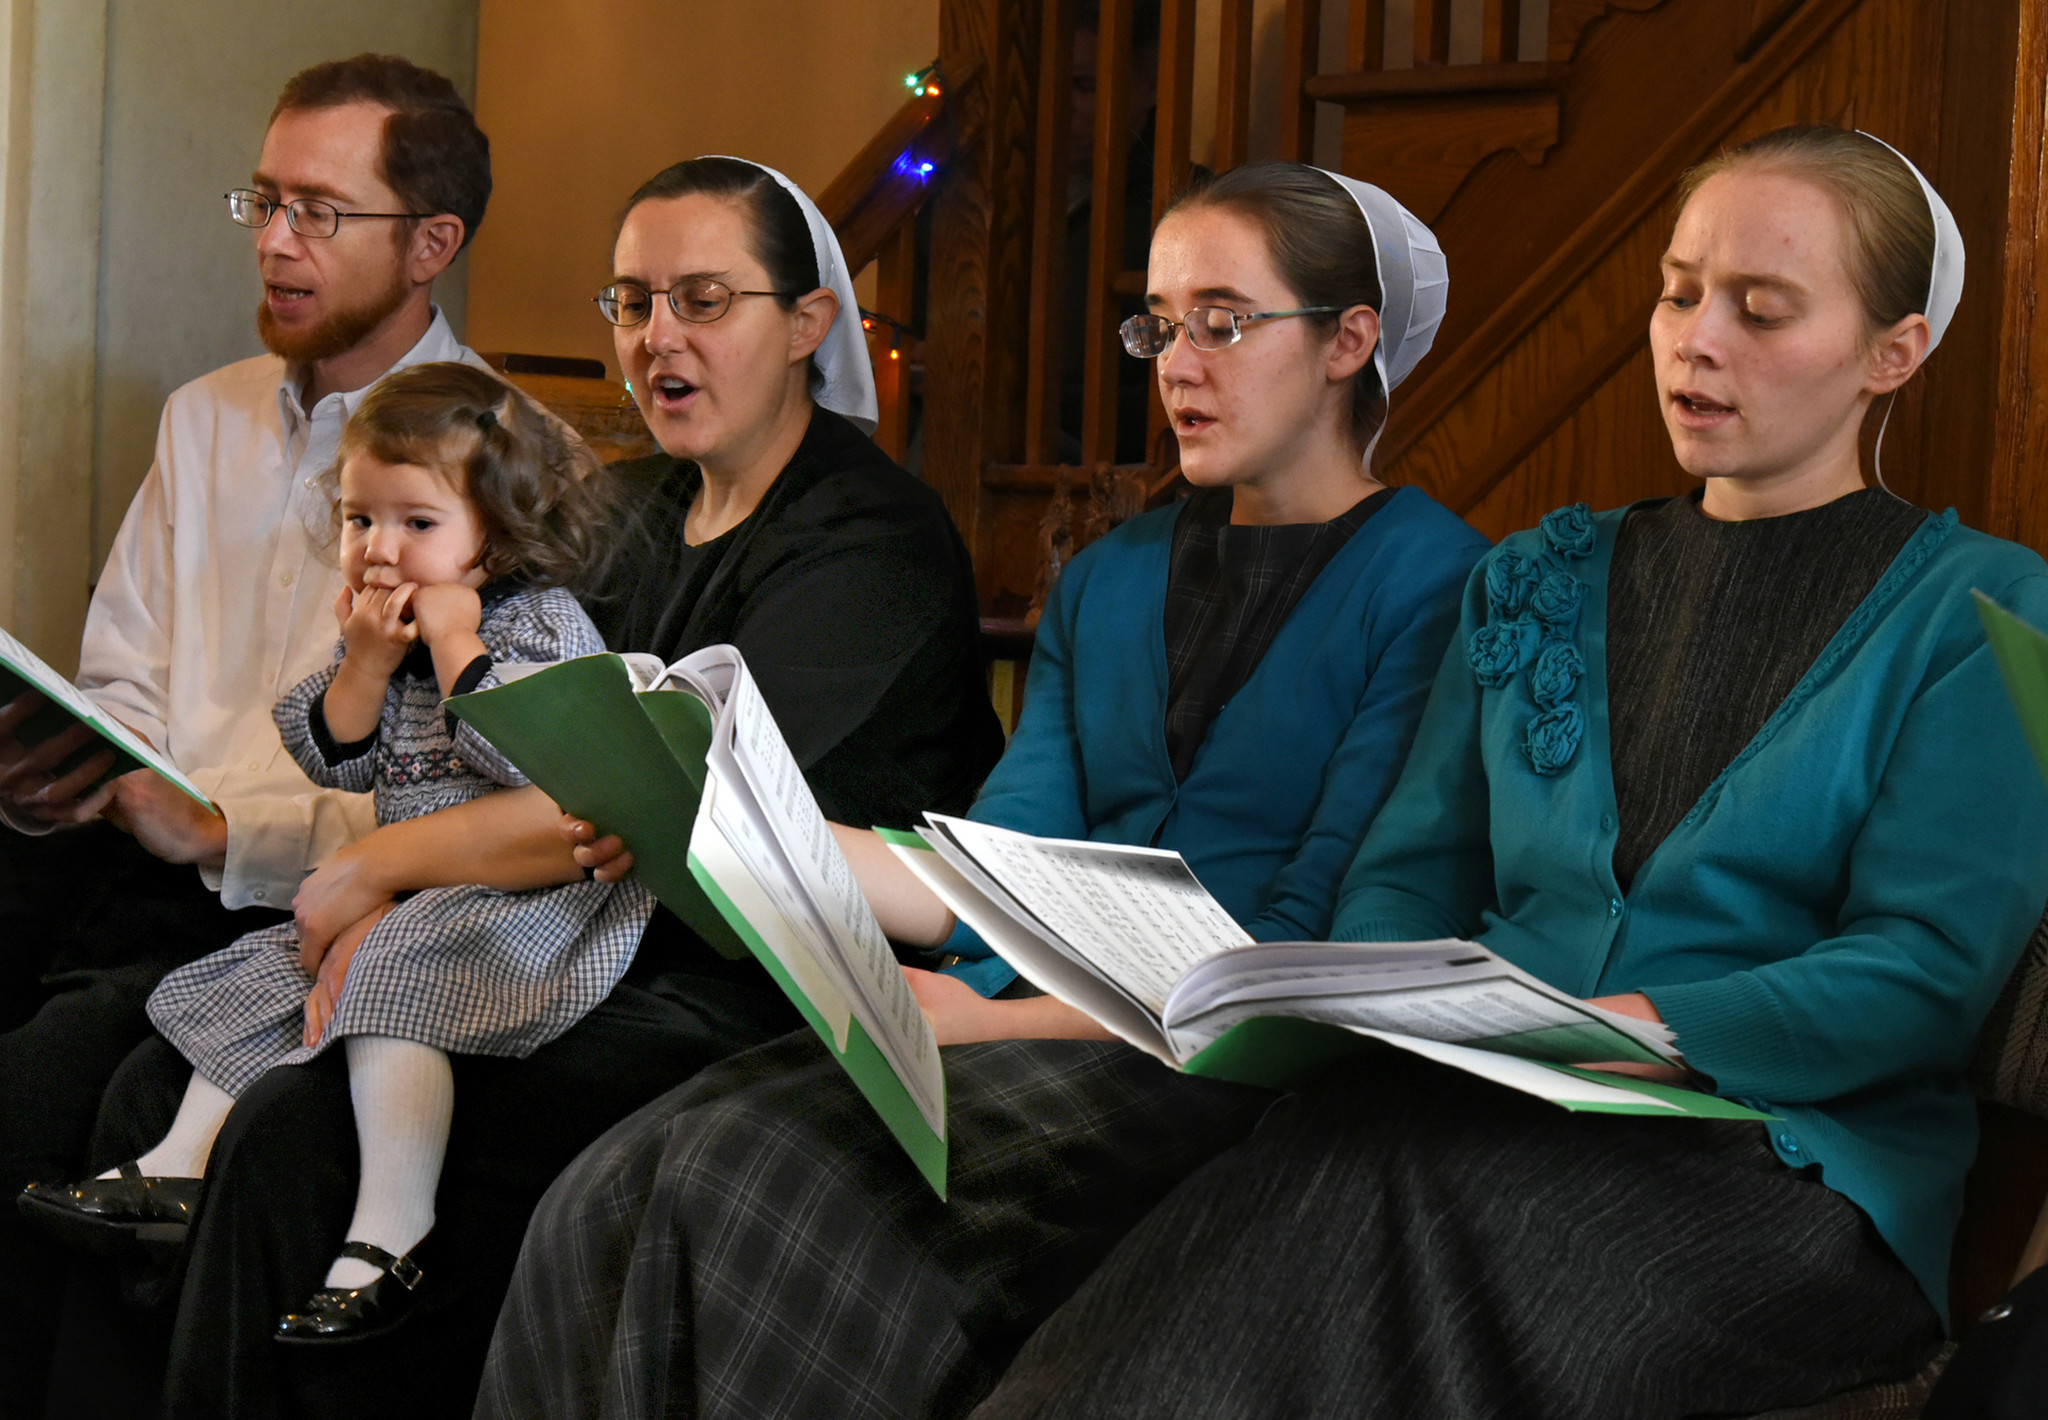 After Nearly 500 Years Mennonites Still View Christmas As